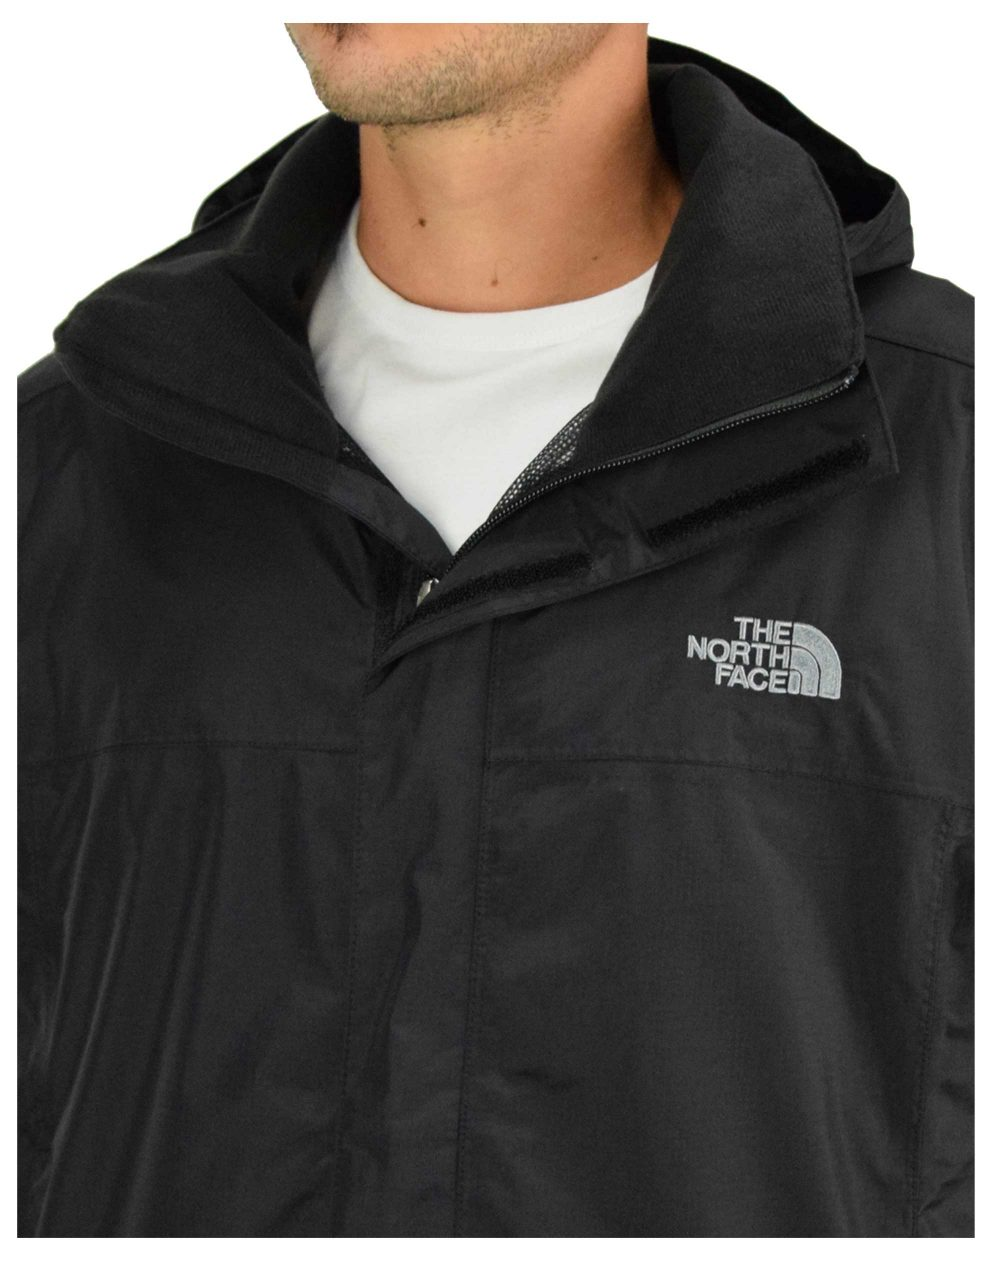 The North Face Resolve 2 Jacket (NF0A2VD5KX71) Black